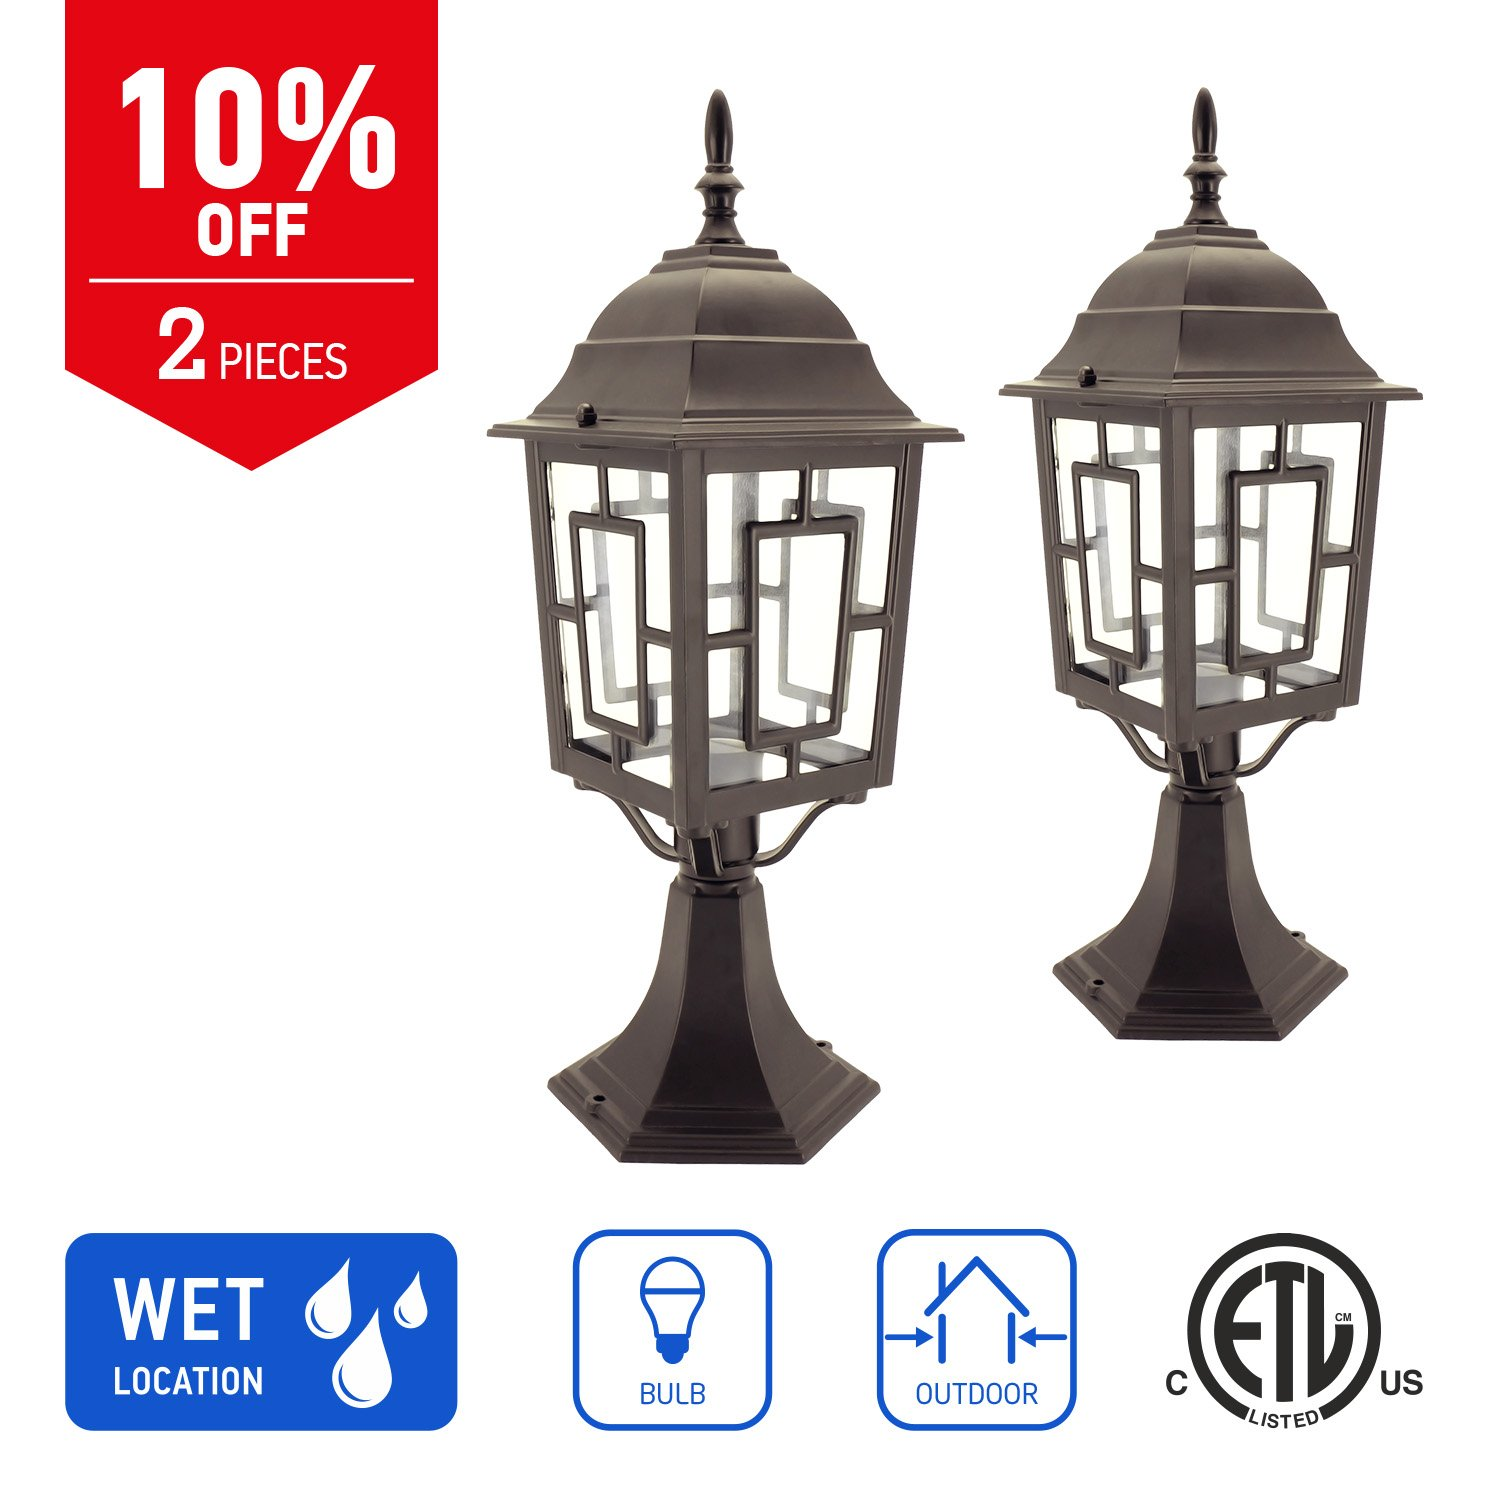 IN HOME 1-Light Outdoor Garden Post Lantern L05 Lighting Fixture, Traditional Post Lamp Patio with One E26 Base, Water-Proof, Bronze Cast Aluminum Housing, Clear Glass Panels, (2 Pack) ETL Listed